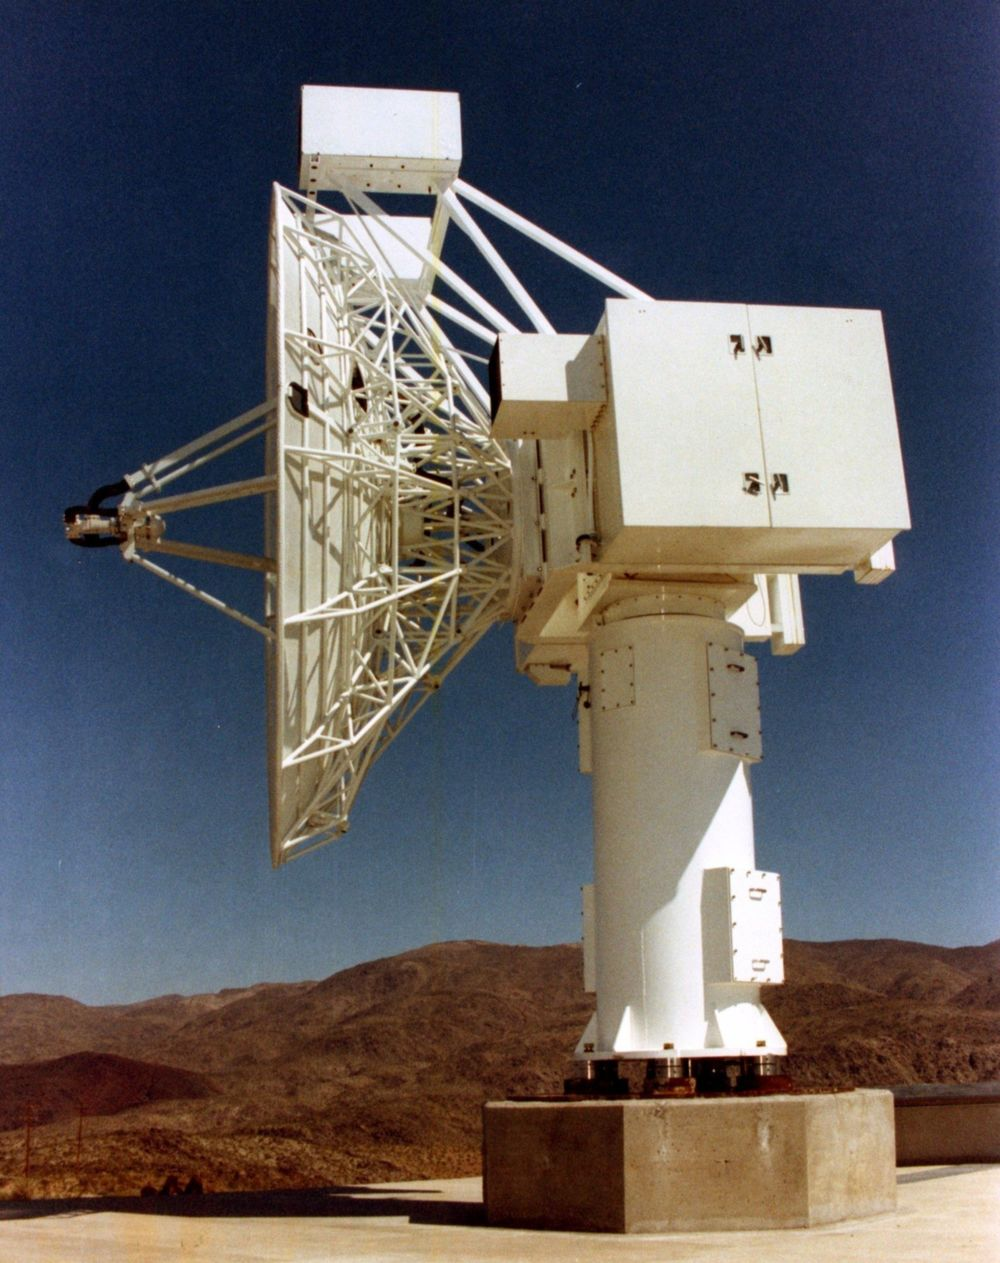 S-Band Precision Range Radar